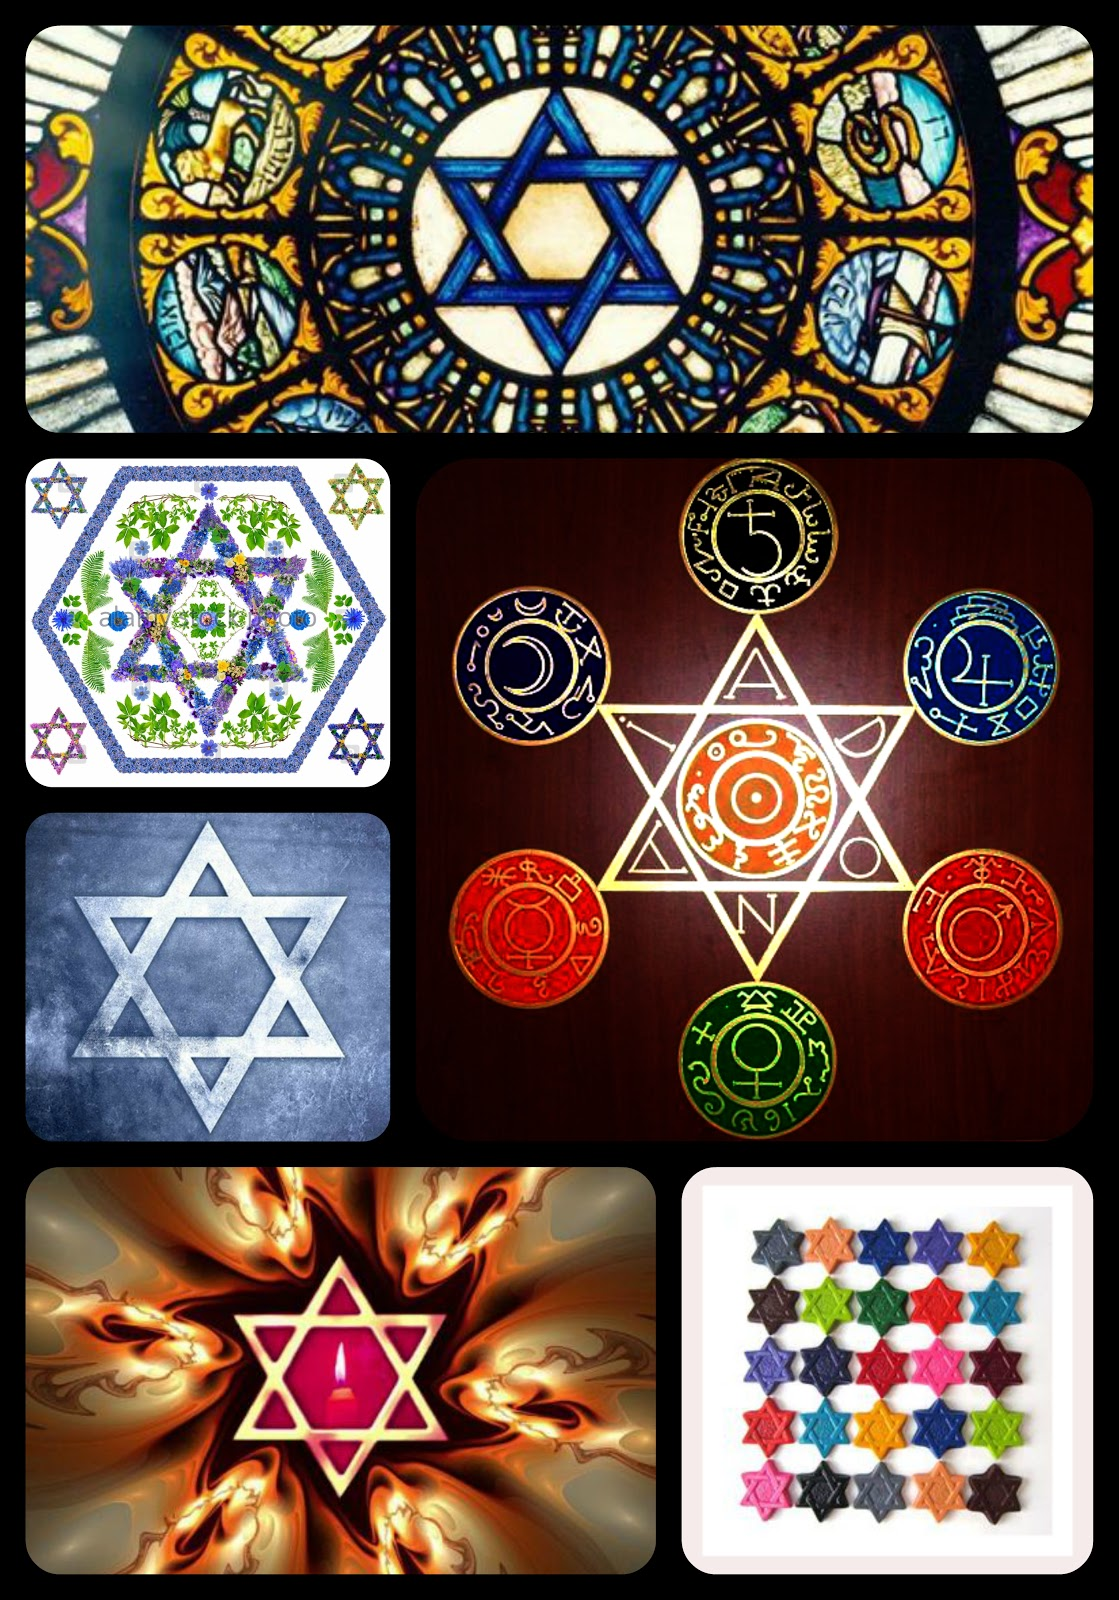 The star of david star of david book quote the star of david is also a symbol for jesus who was a descendant of king david stars the star of david or six pointed star are also considered symbols biocorpaavc Choice Image